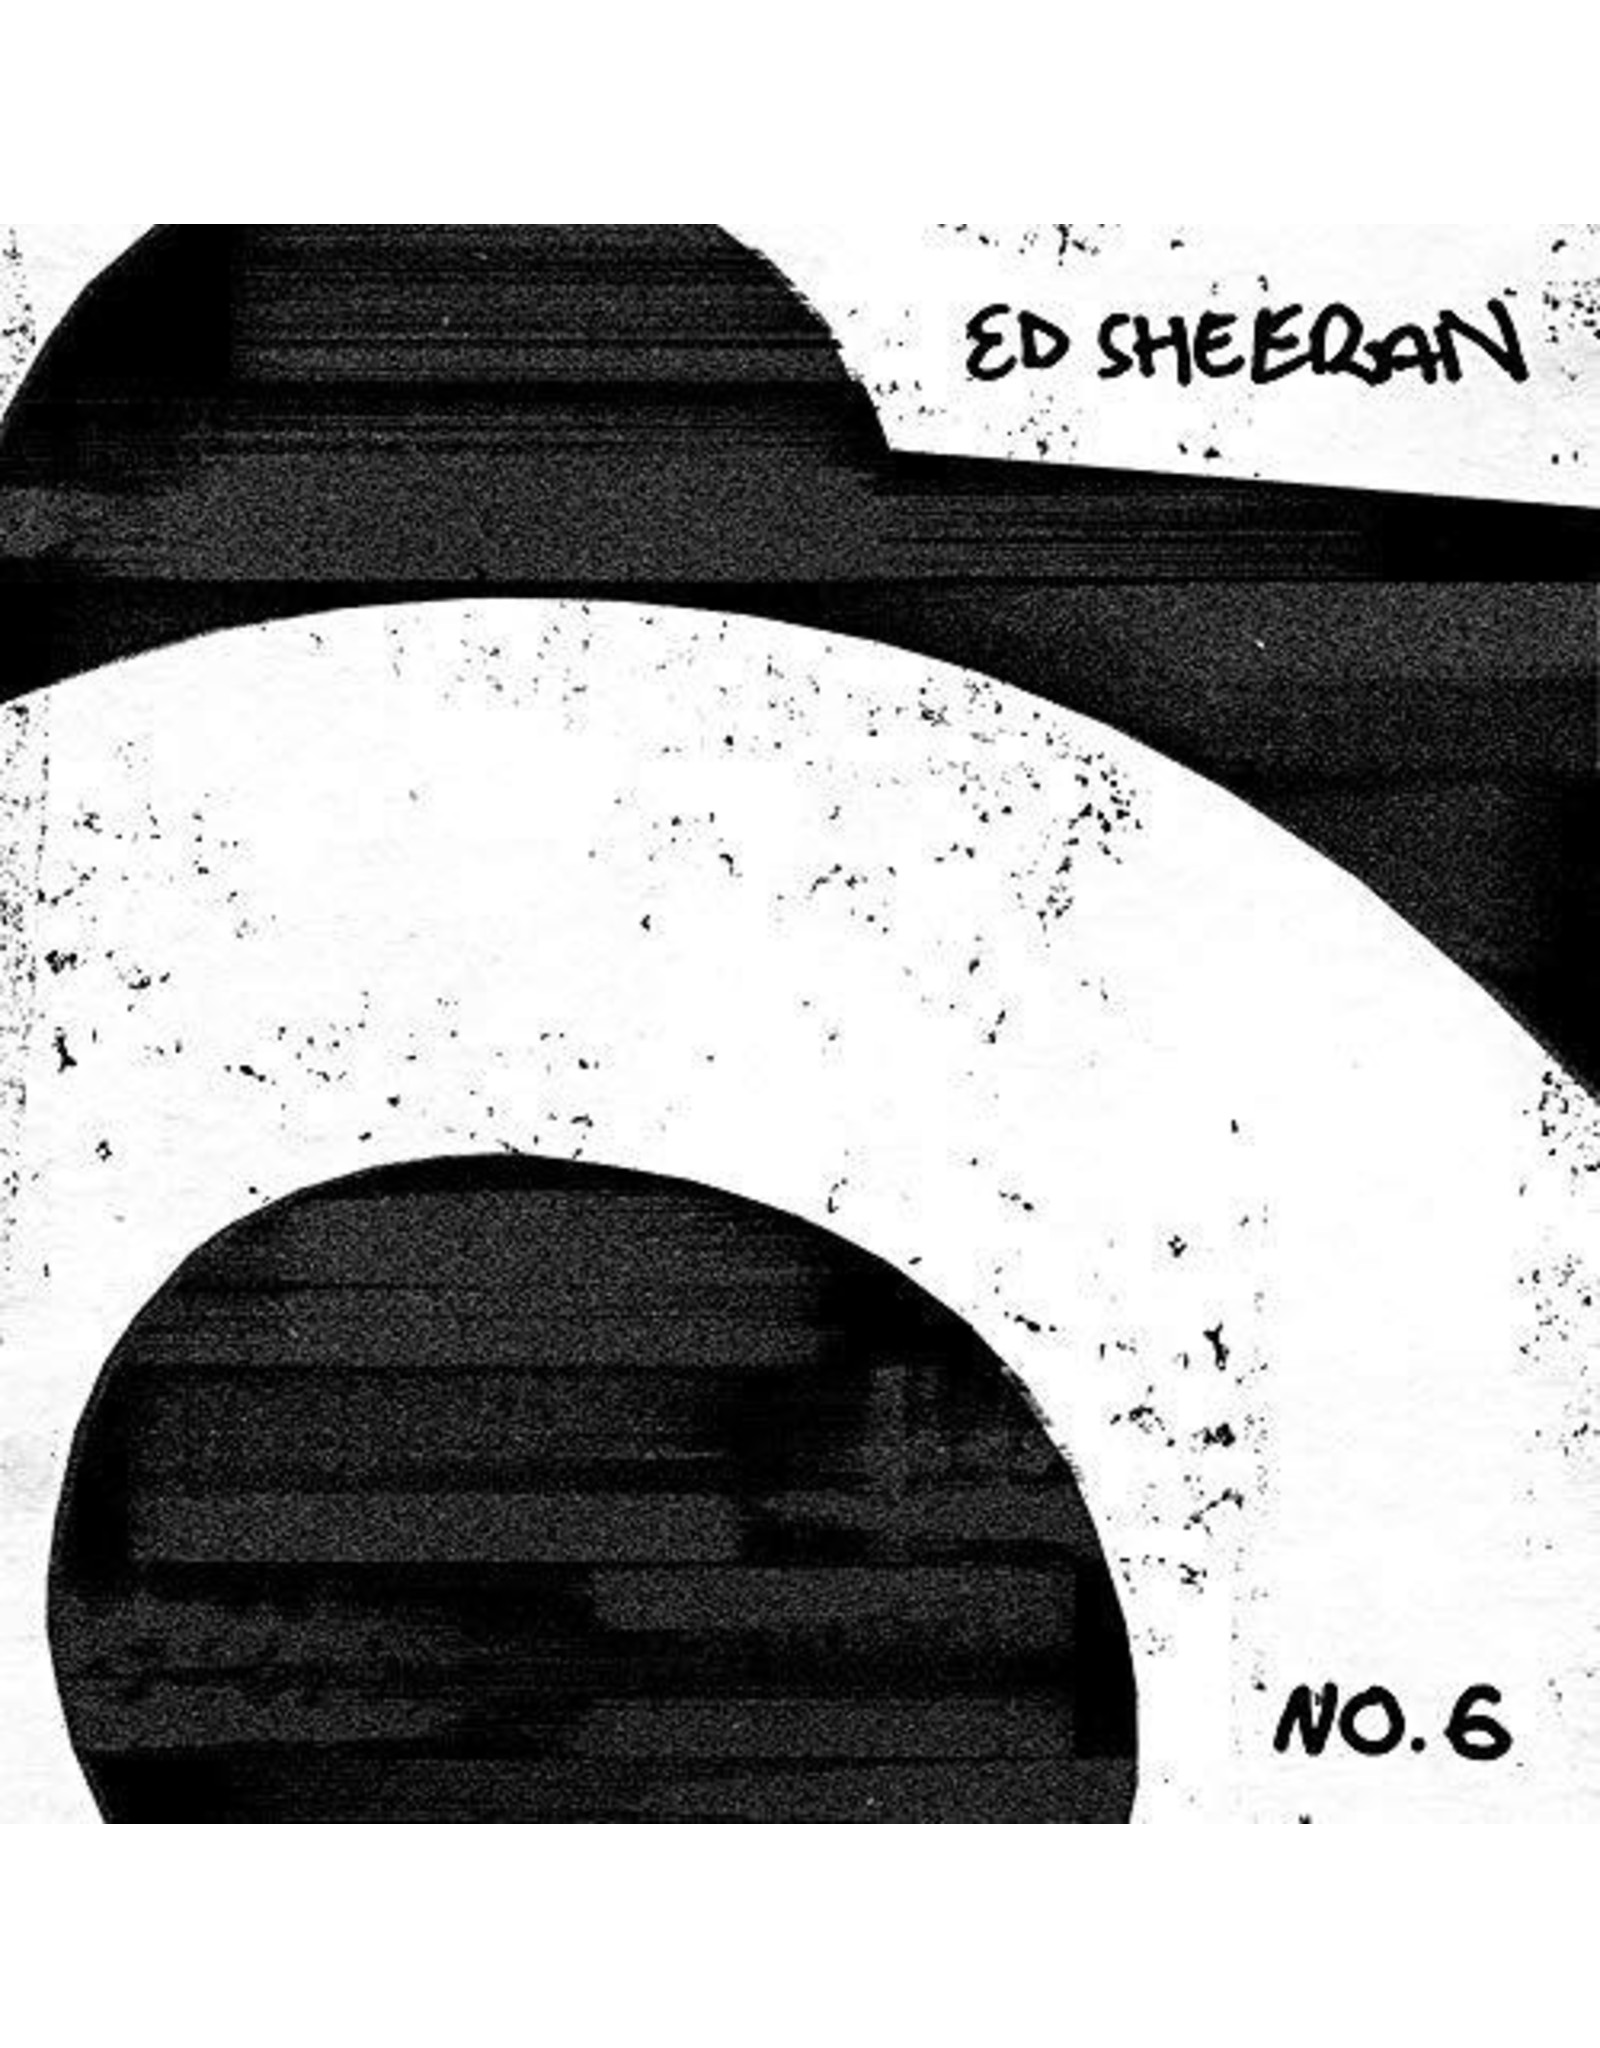 New Vinyl Ed Sheeran - No. 6 Collaborations Project 2LP